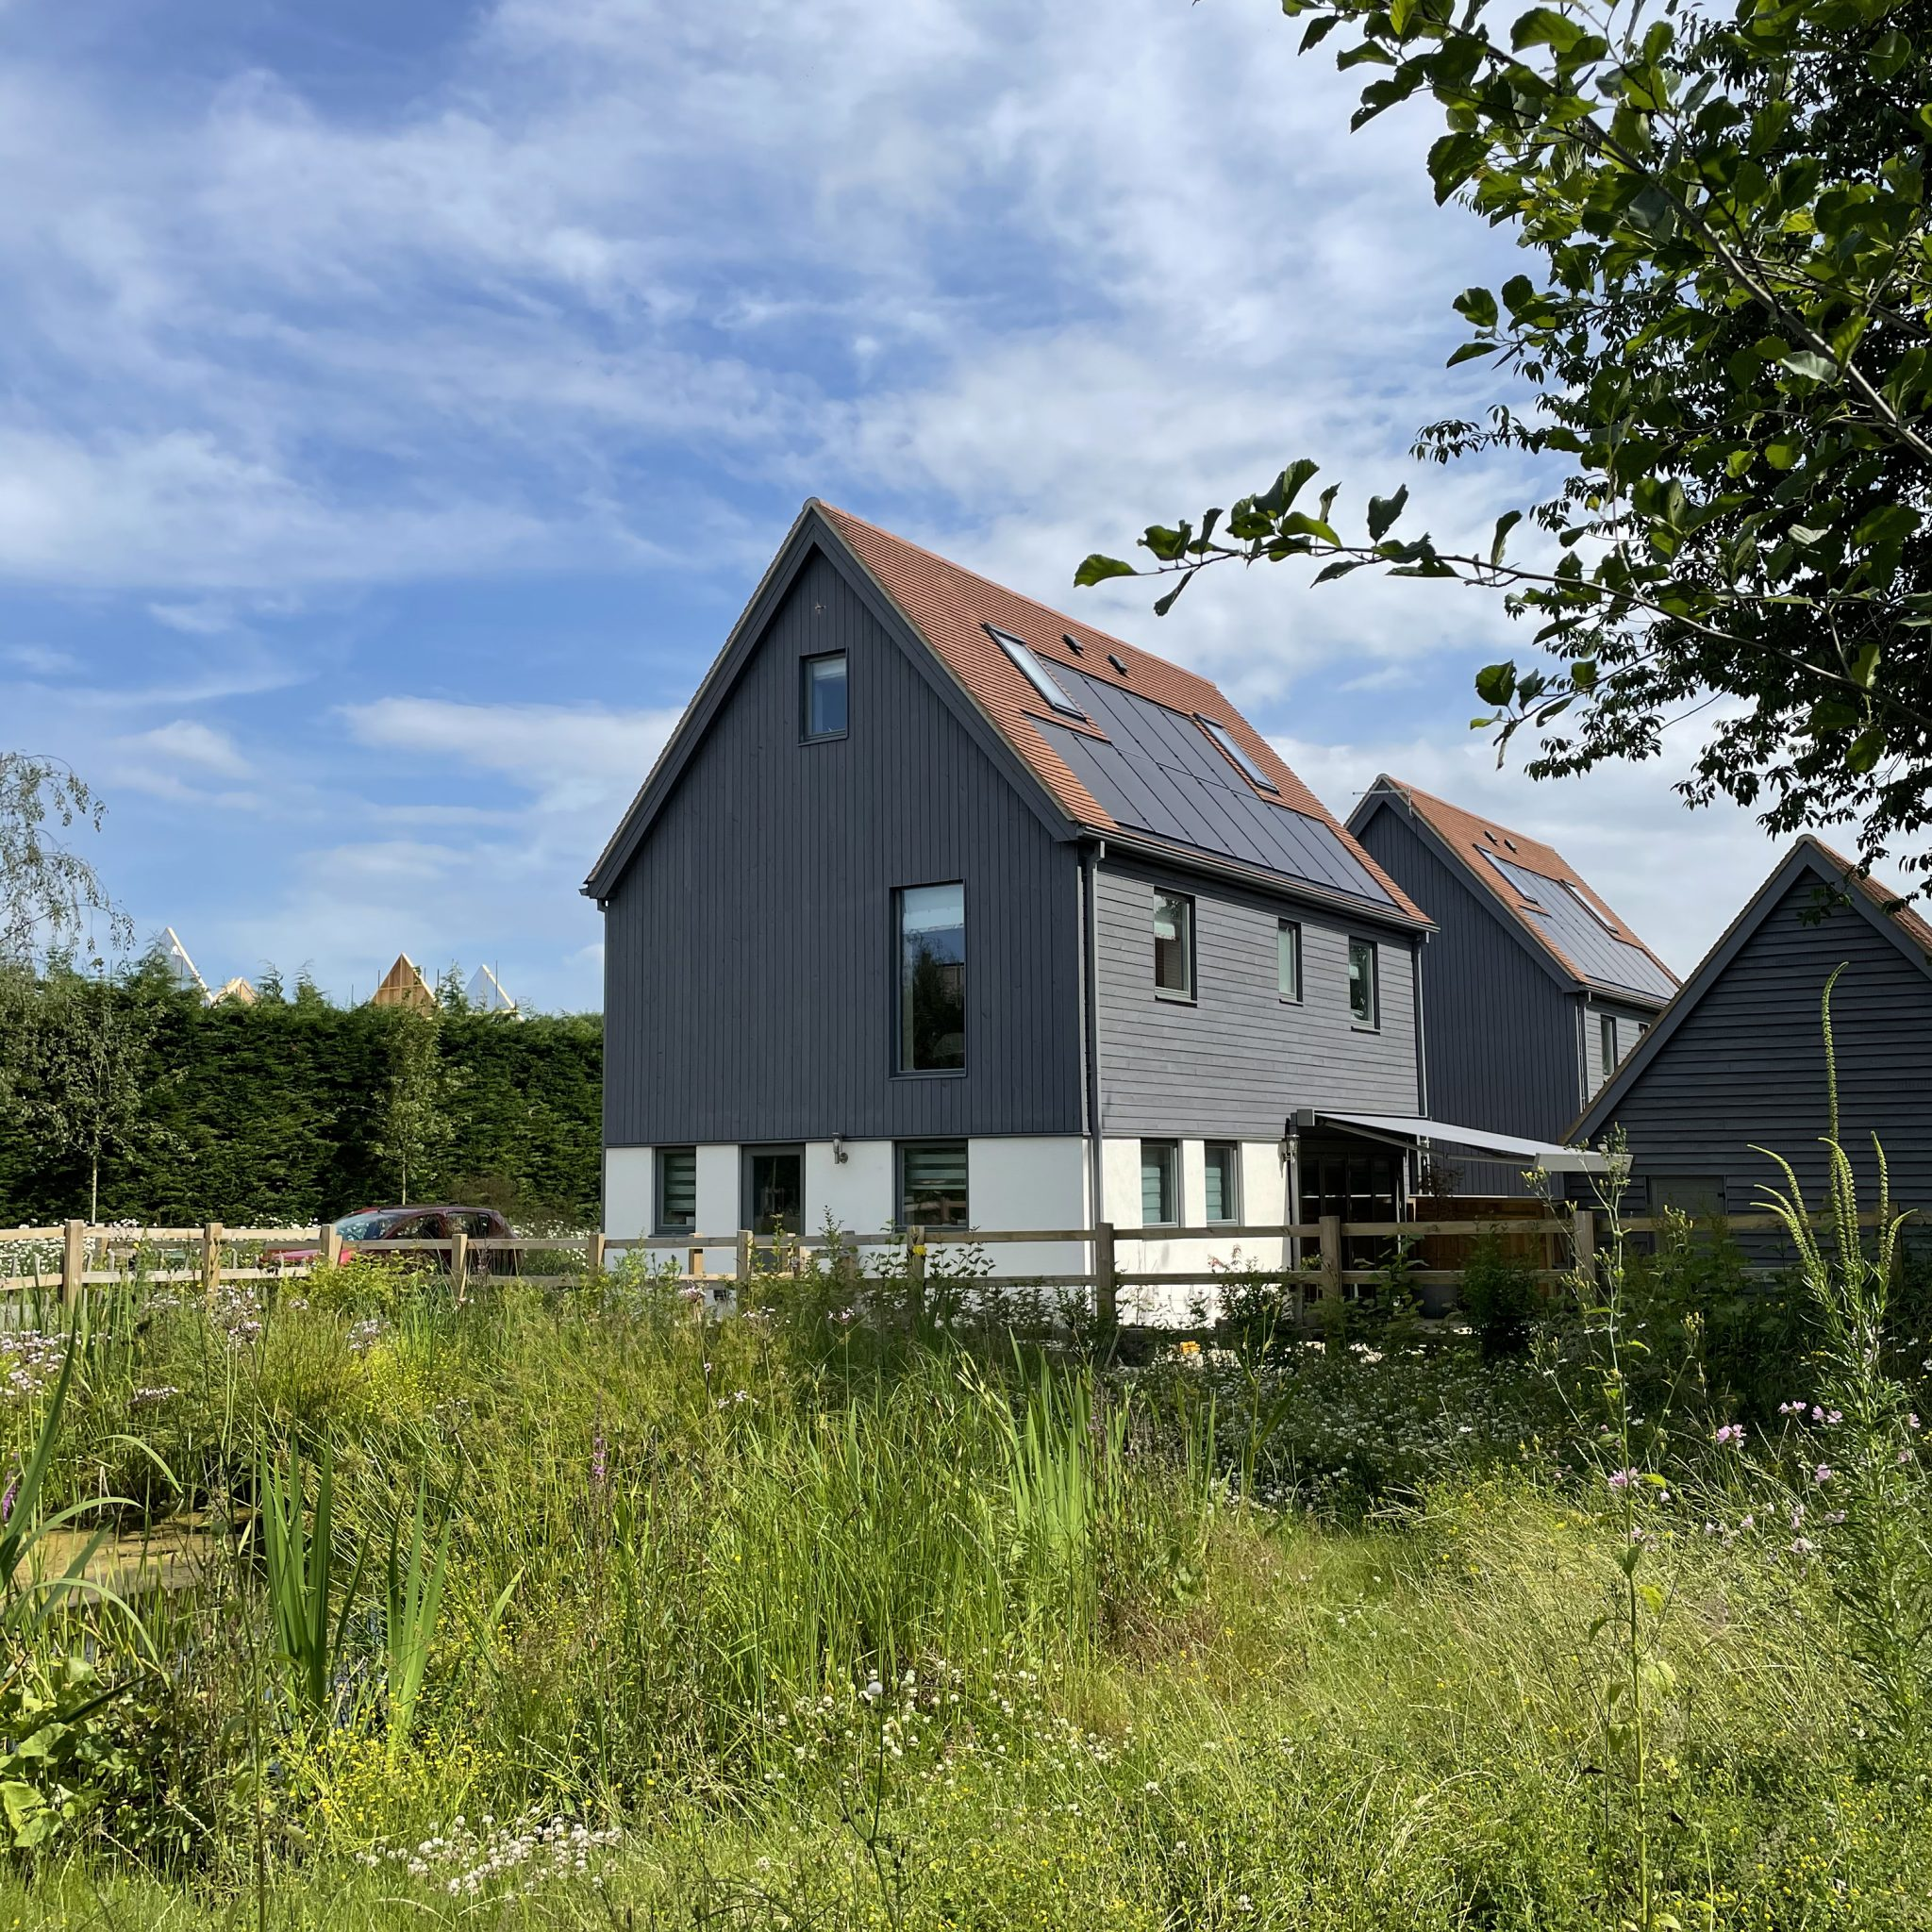 New net zero and low energy housing case studies published